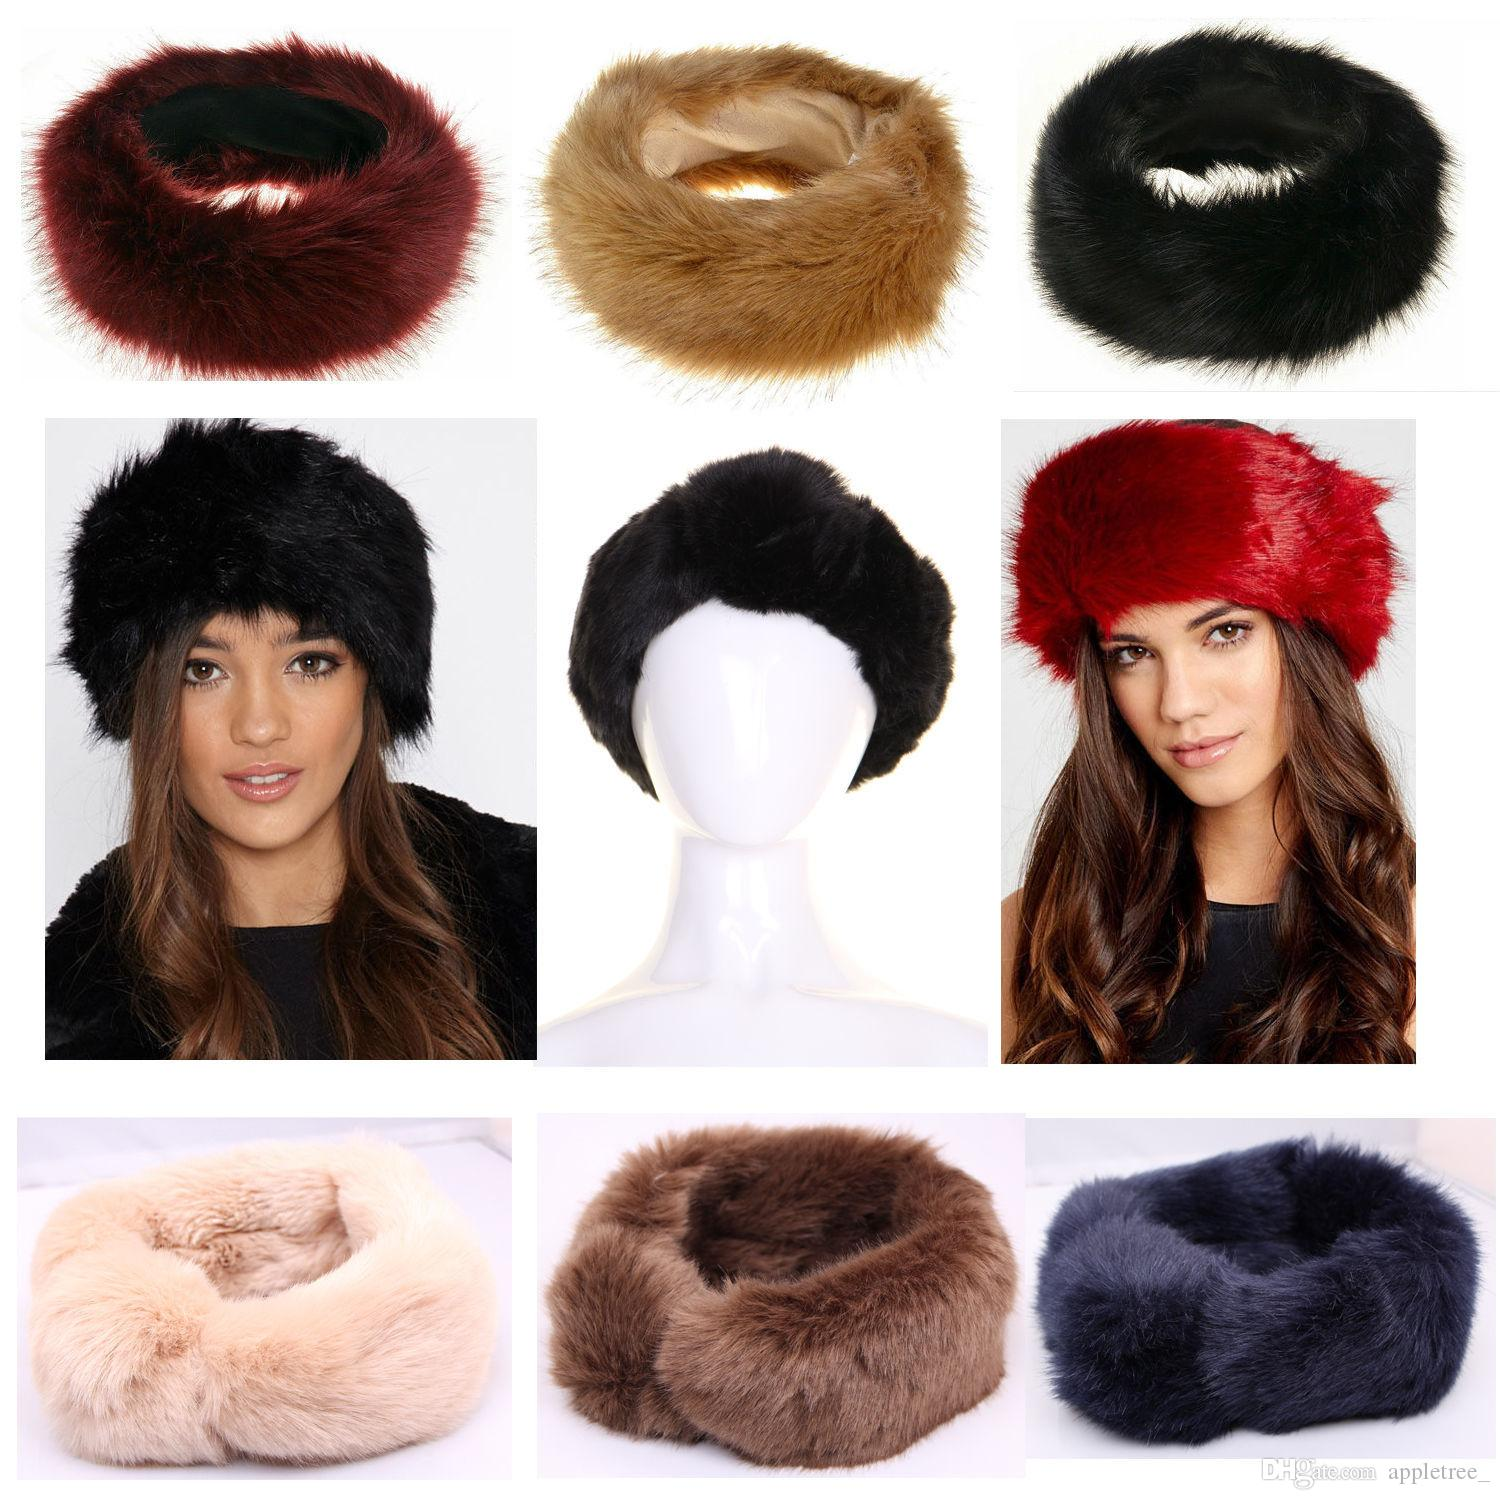 b641e89f6 Women Faux Fox Fur Hat Winter warm Cap Luxury headwear female hats caps  Headband womens Ear warmer earwarmer Girl Earmuff hot